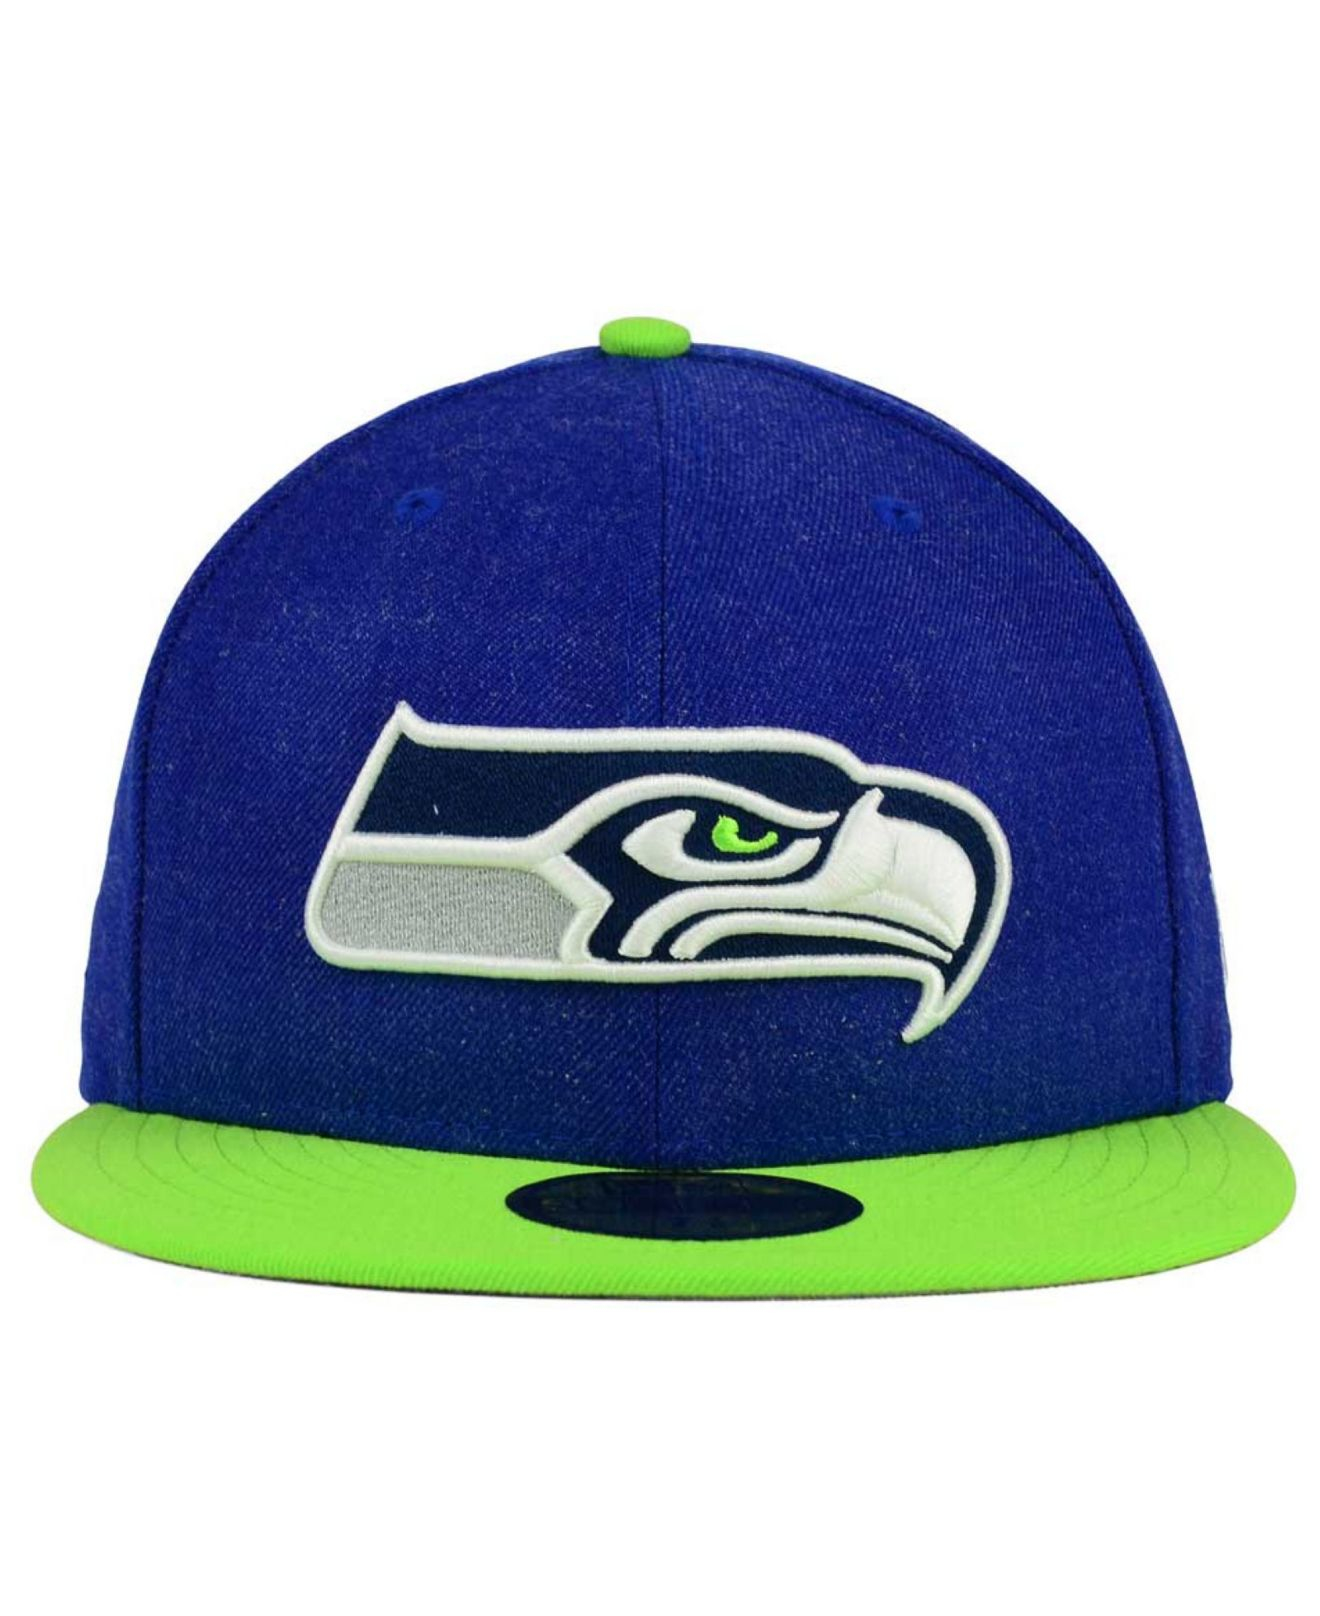 81266c3b552 ... promo code for lyst ktz seattle seahawks heather action 2 tone 59fifty  cap in 1d92b 81643